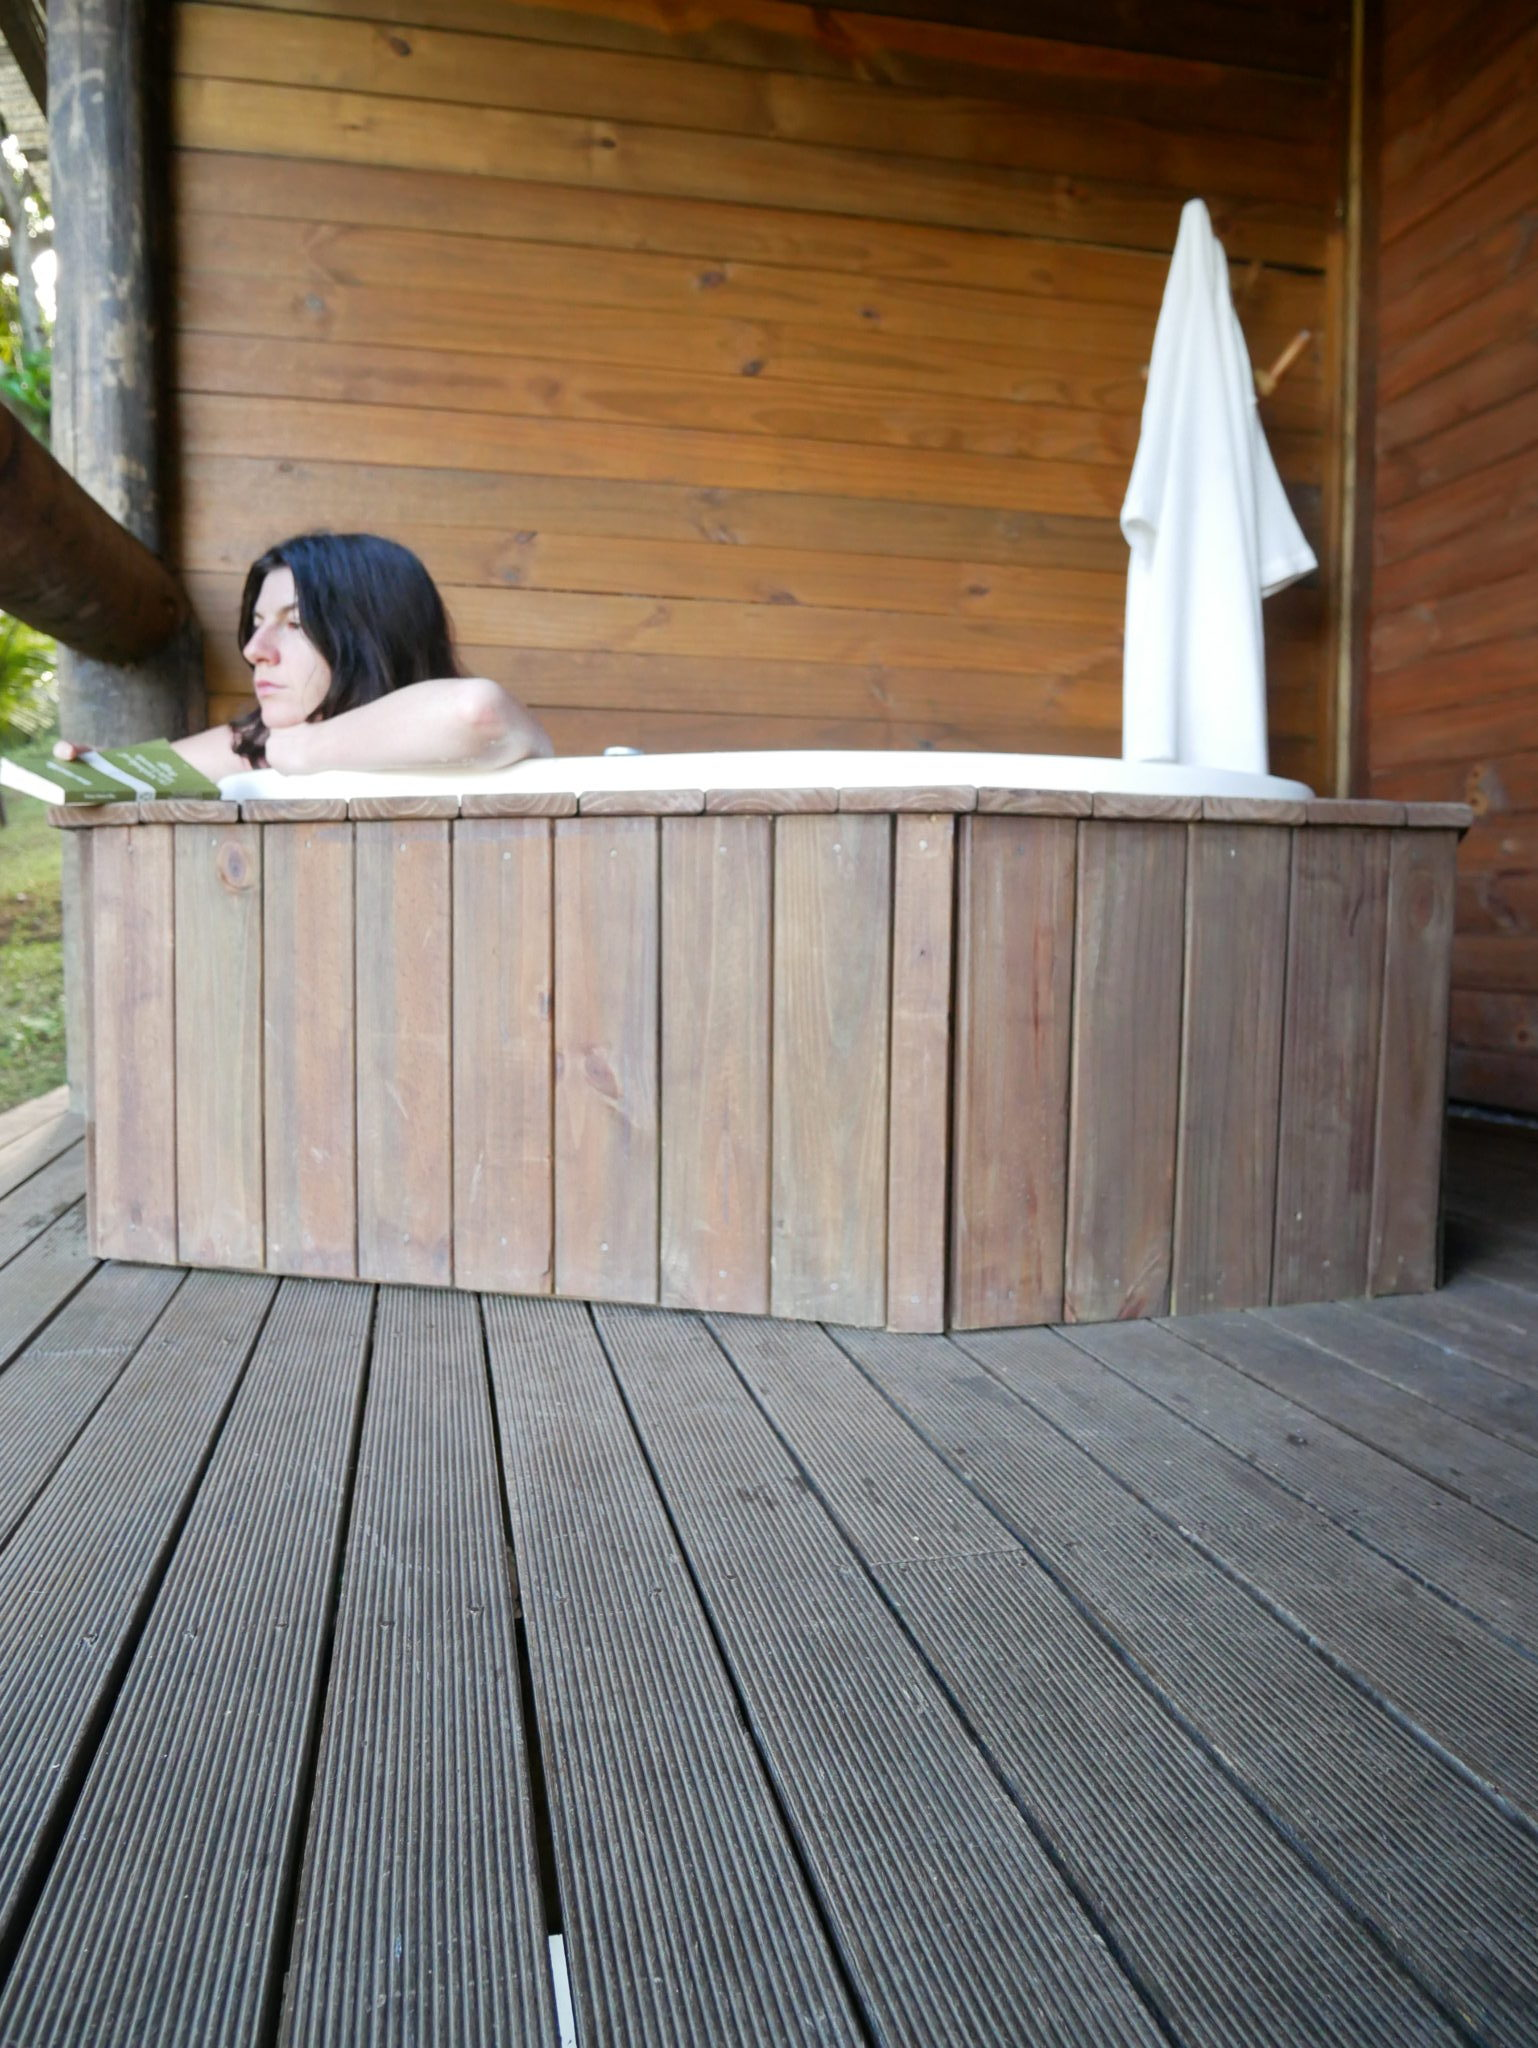 Personal Hot Tub at Toque Toque Boutique Hotel